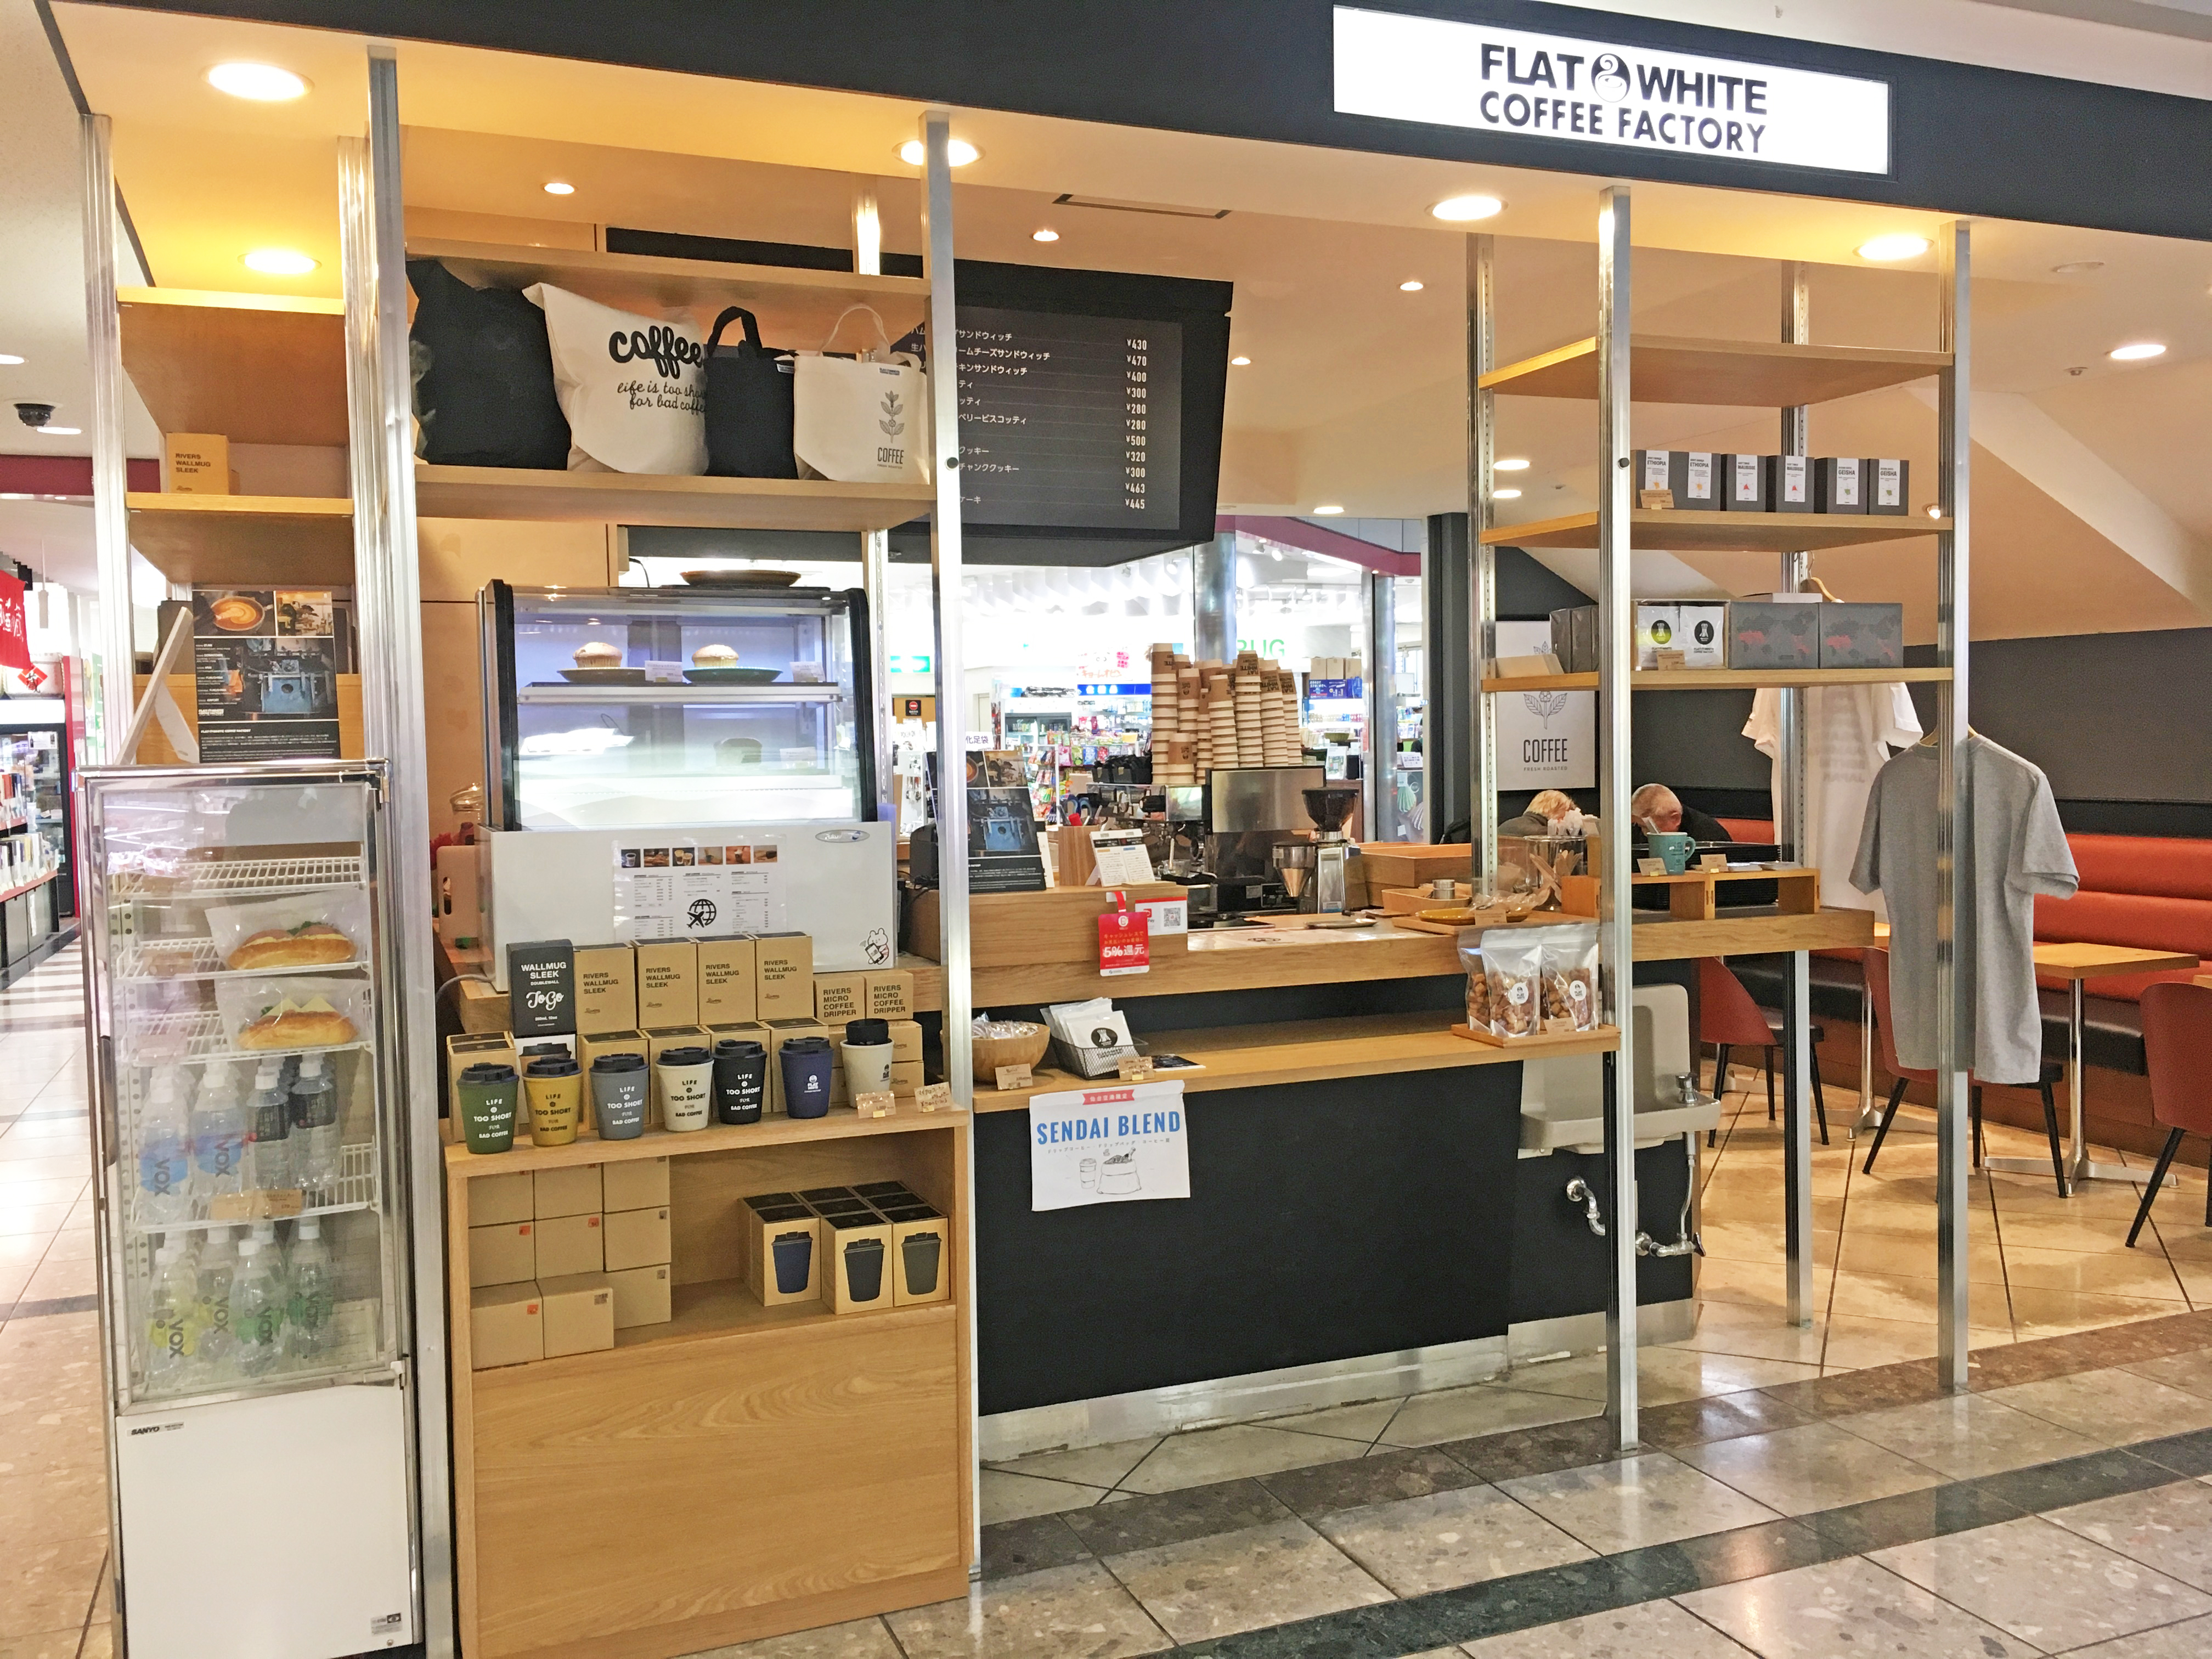 FLAT WHITE COFFEE FACTORY, Sendai Airport Shop